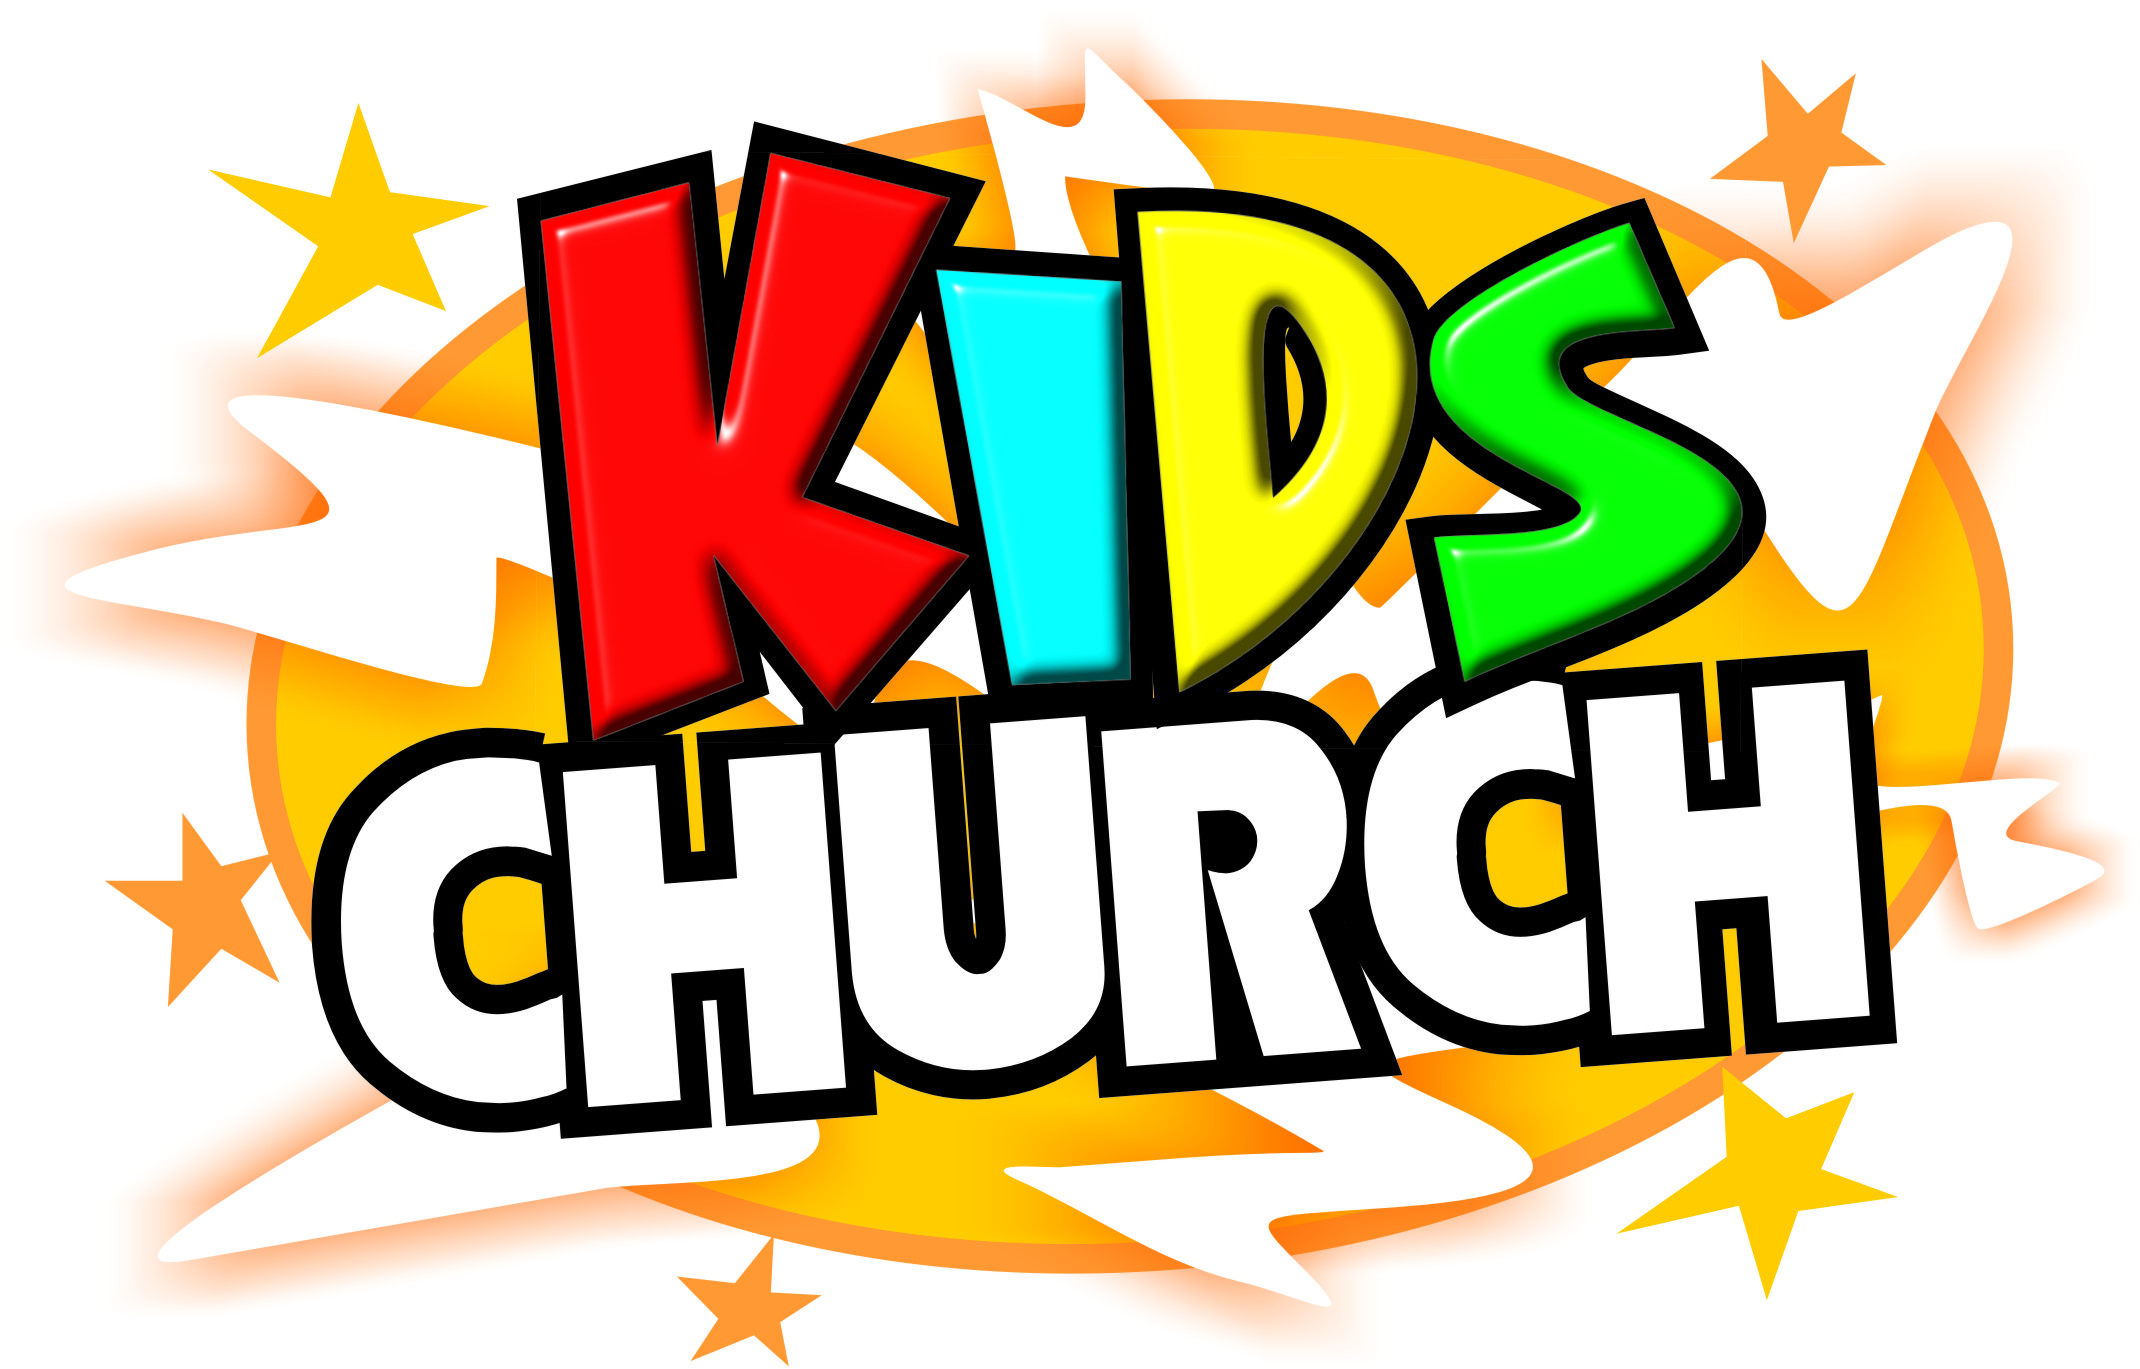 Cookout clipart church youth group. In free download best